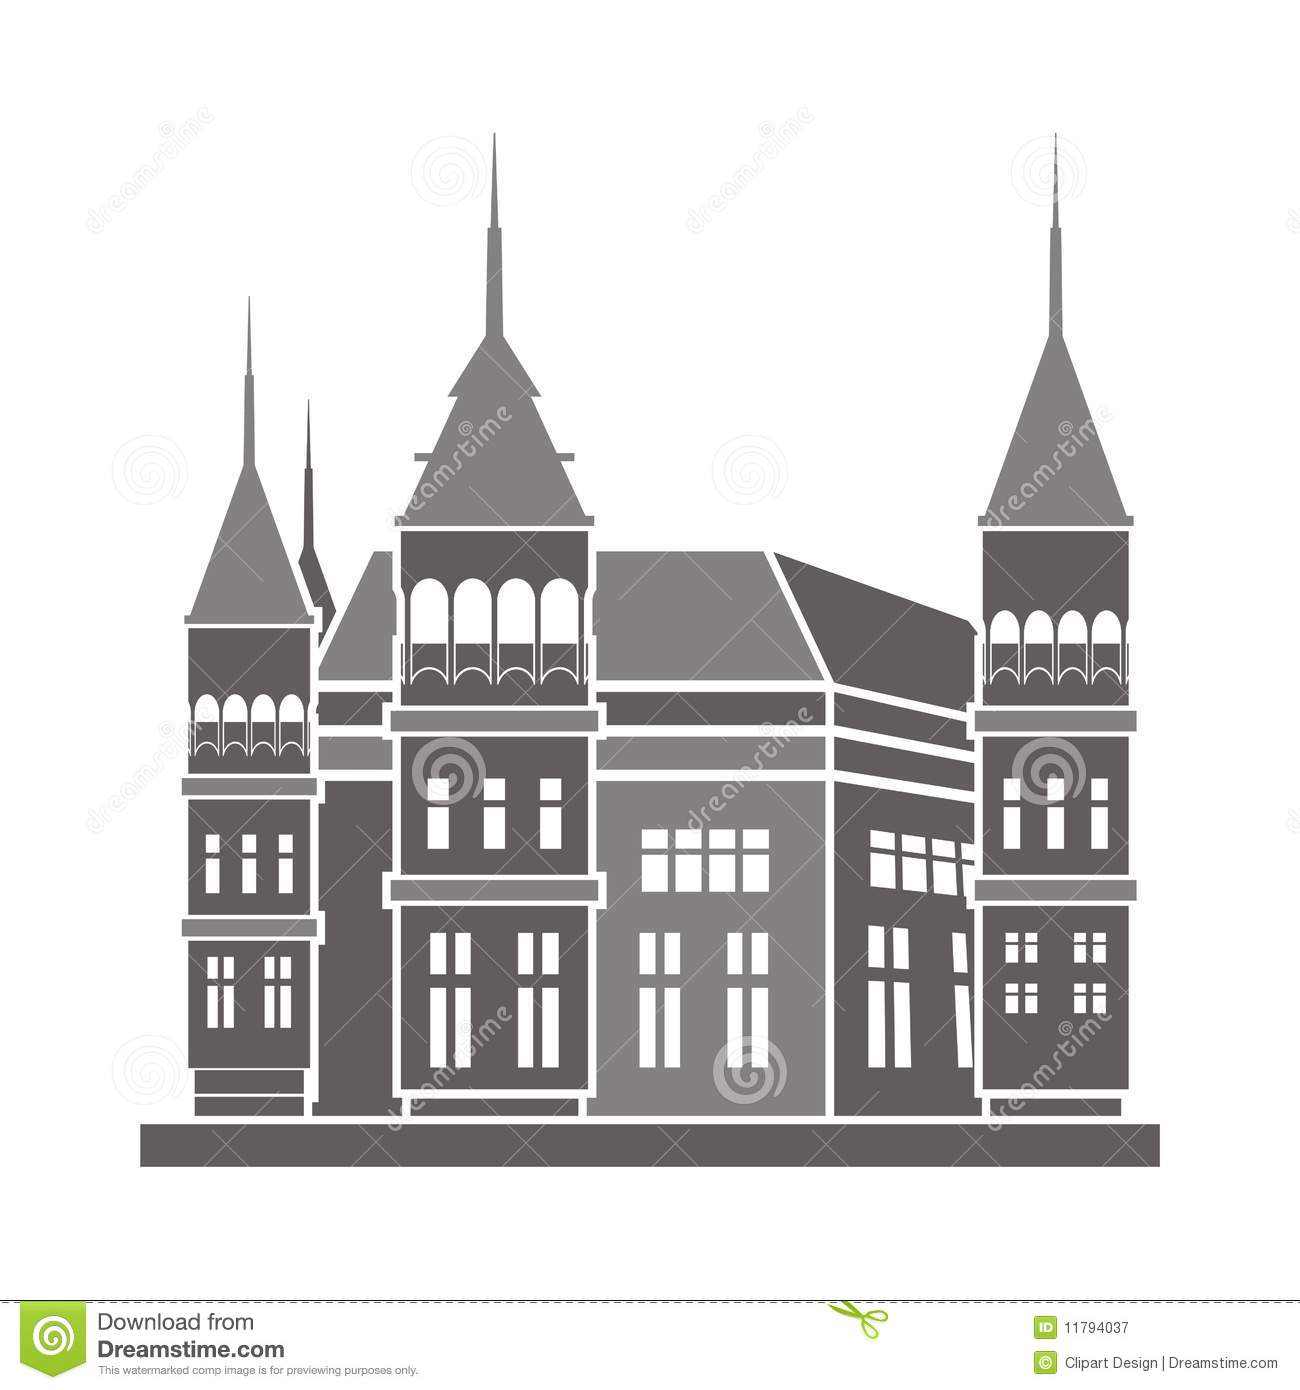 Historic Building Illustration Royalty Free Stock Photography.